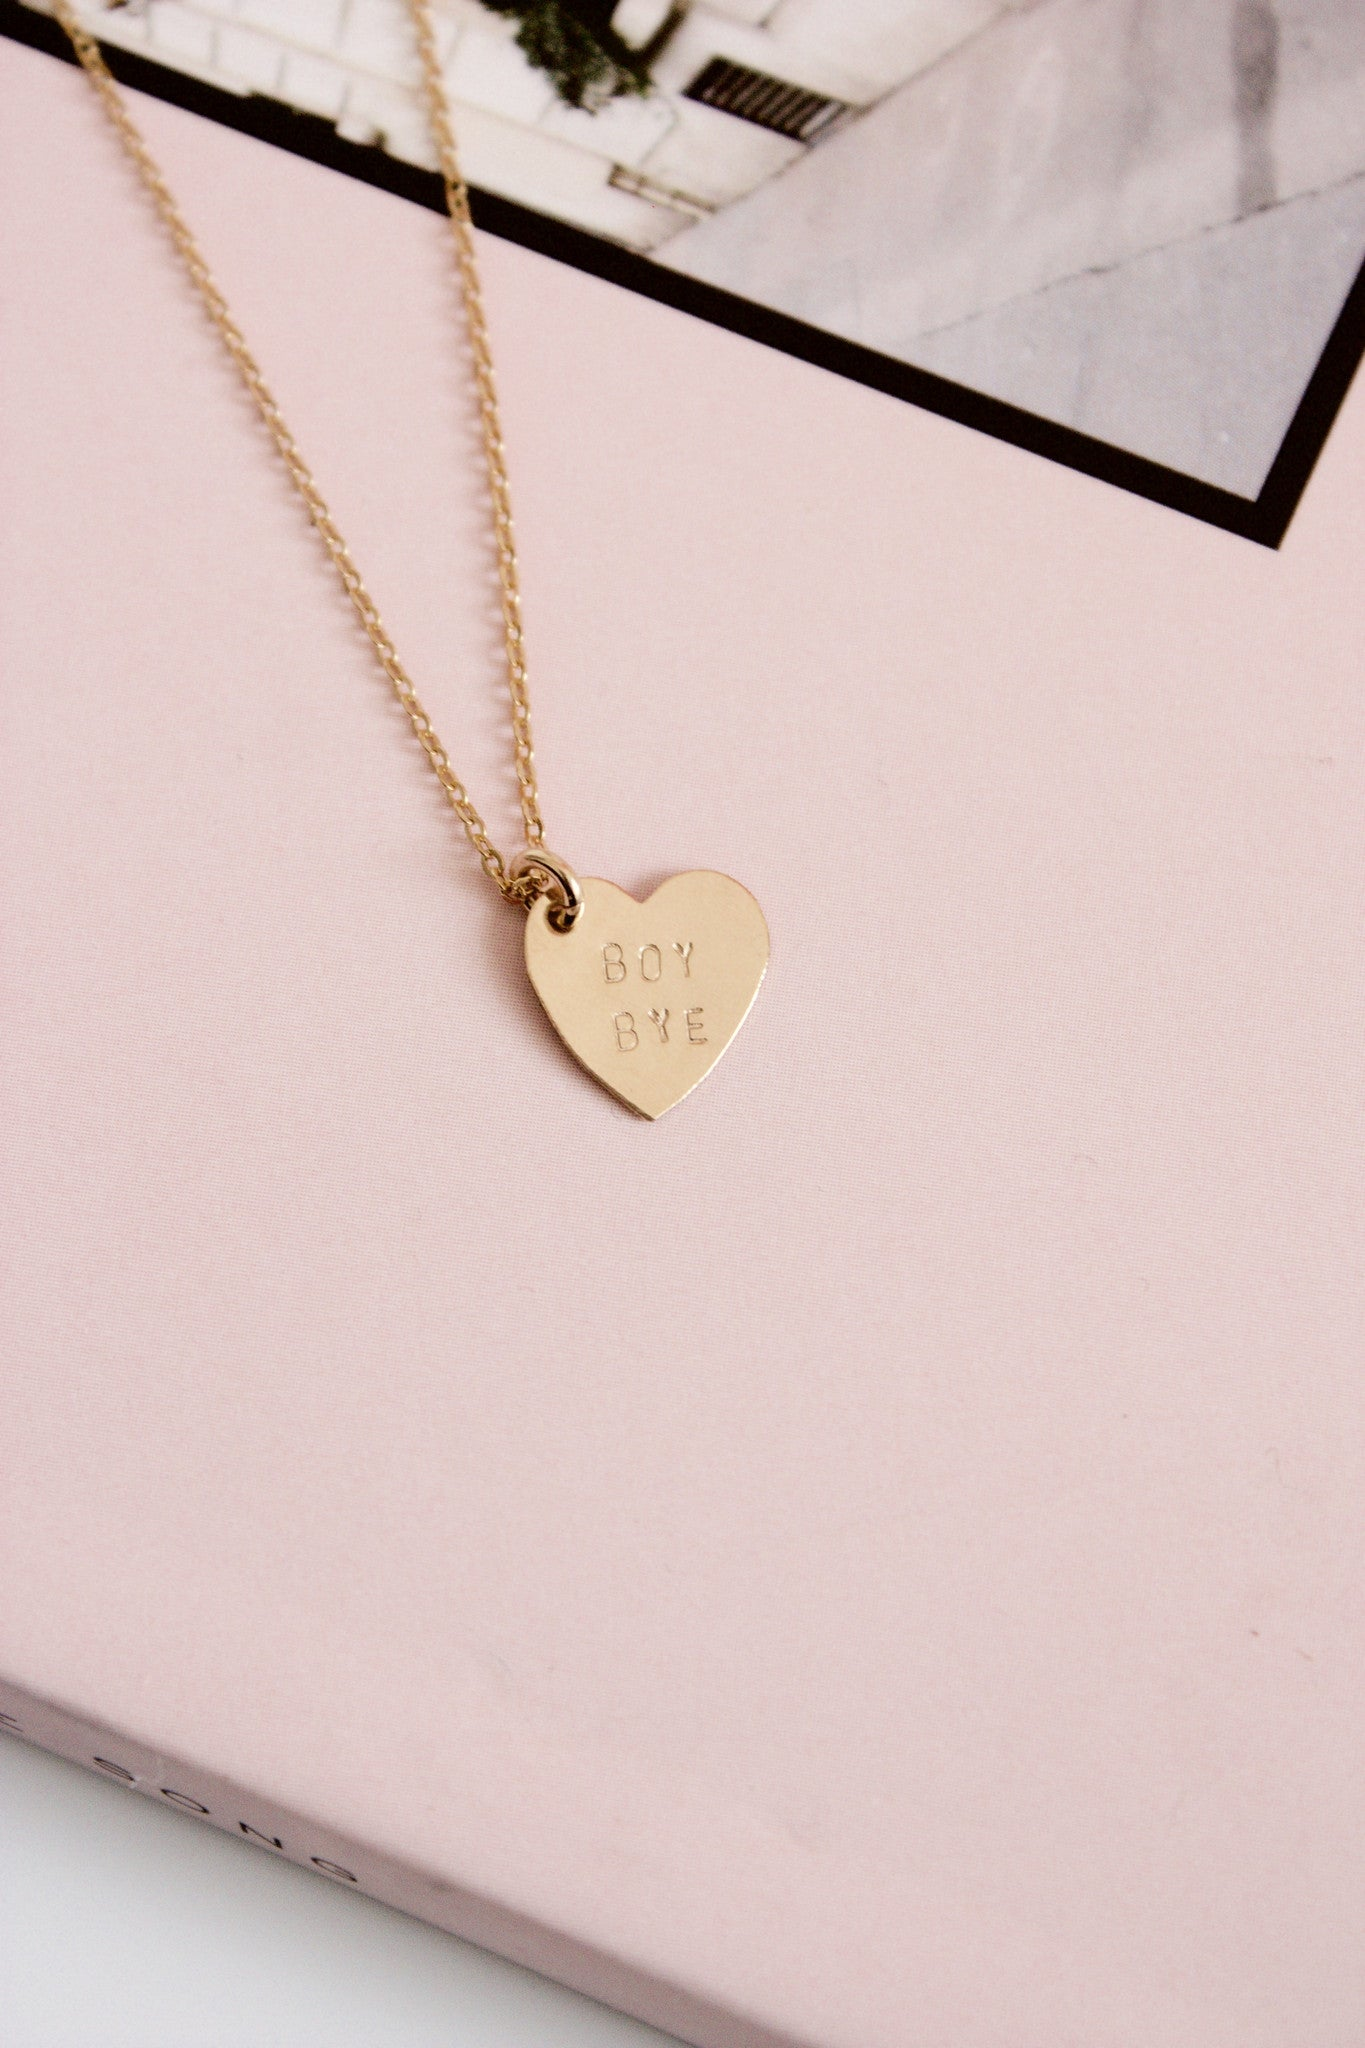 outfitters shop necklace view zoom redesign urban constrain charm e qlt doodle hei fit slide heart mini